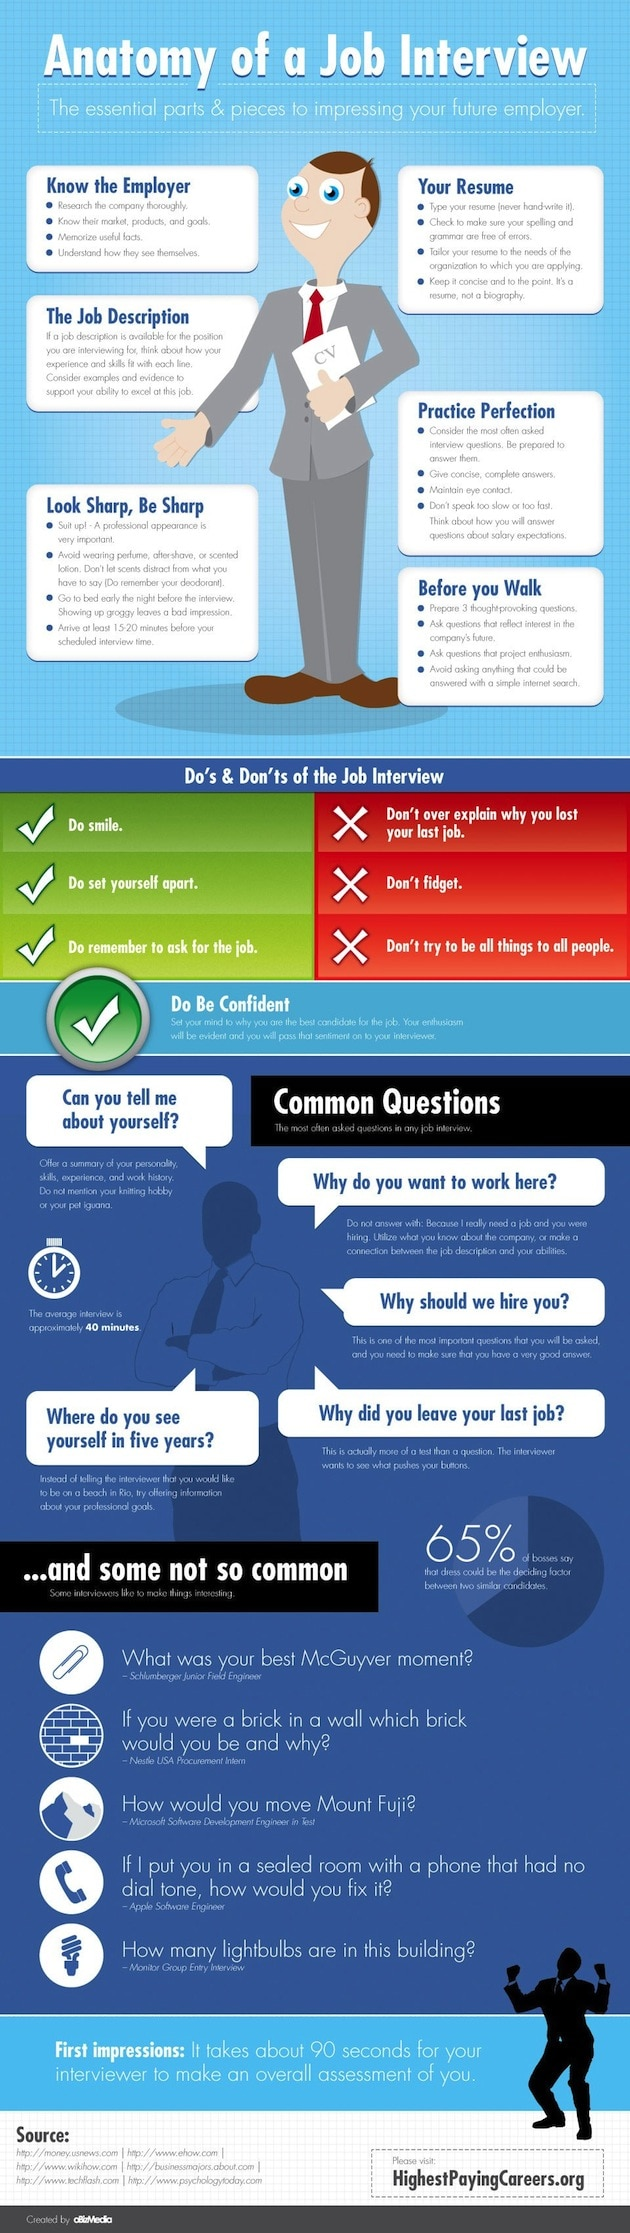 how the job interview works